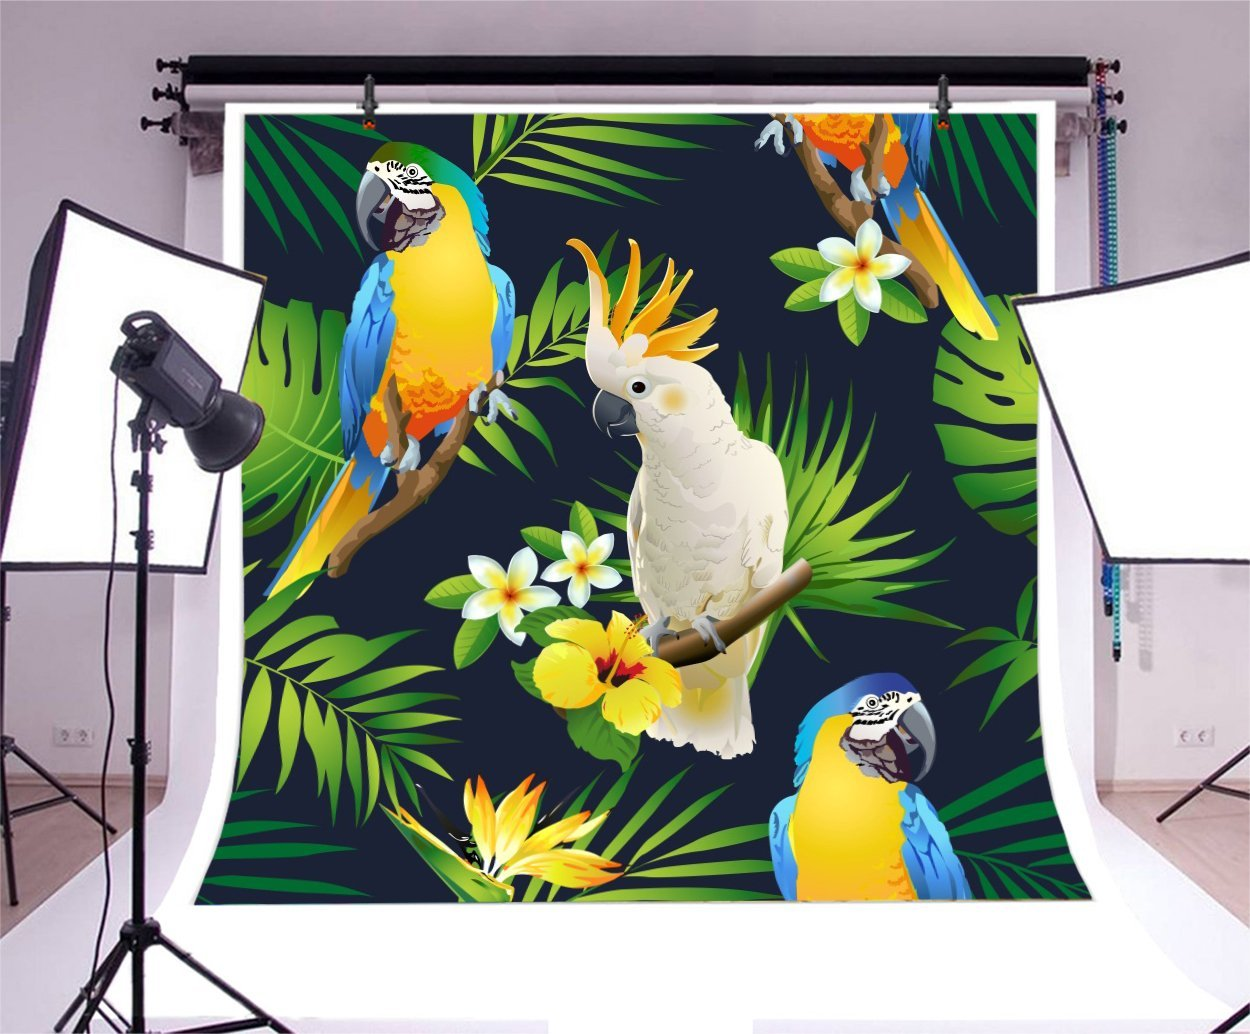 7x10 FT Plant Vinyl Photography Backdrop,Bird of Paradise Palm Leaf and Assorted Exotic Flowers Watercolor Background for Baby Birthday Party Wedding Graduation Home Decoration